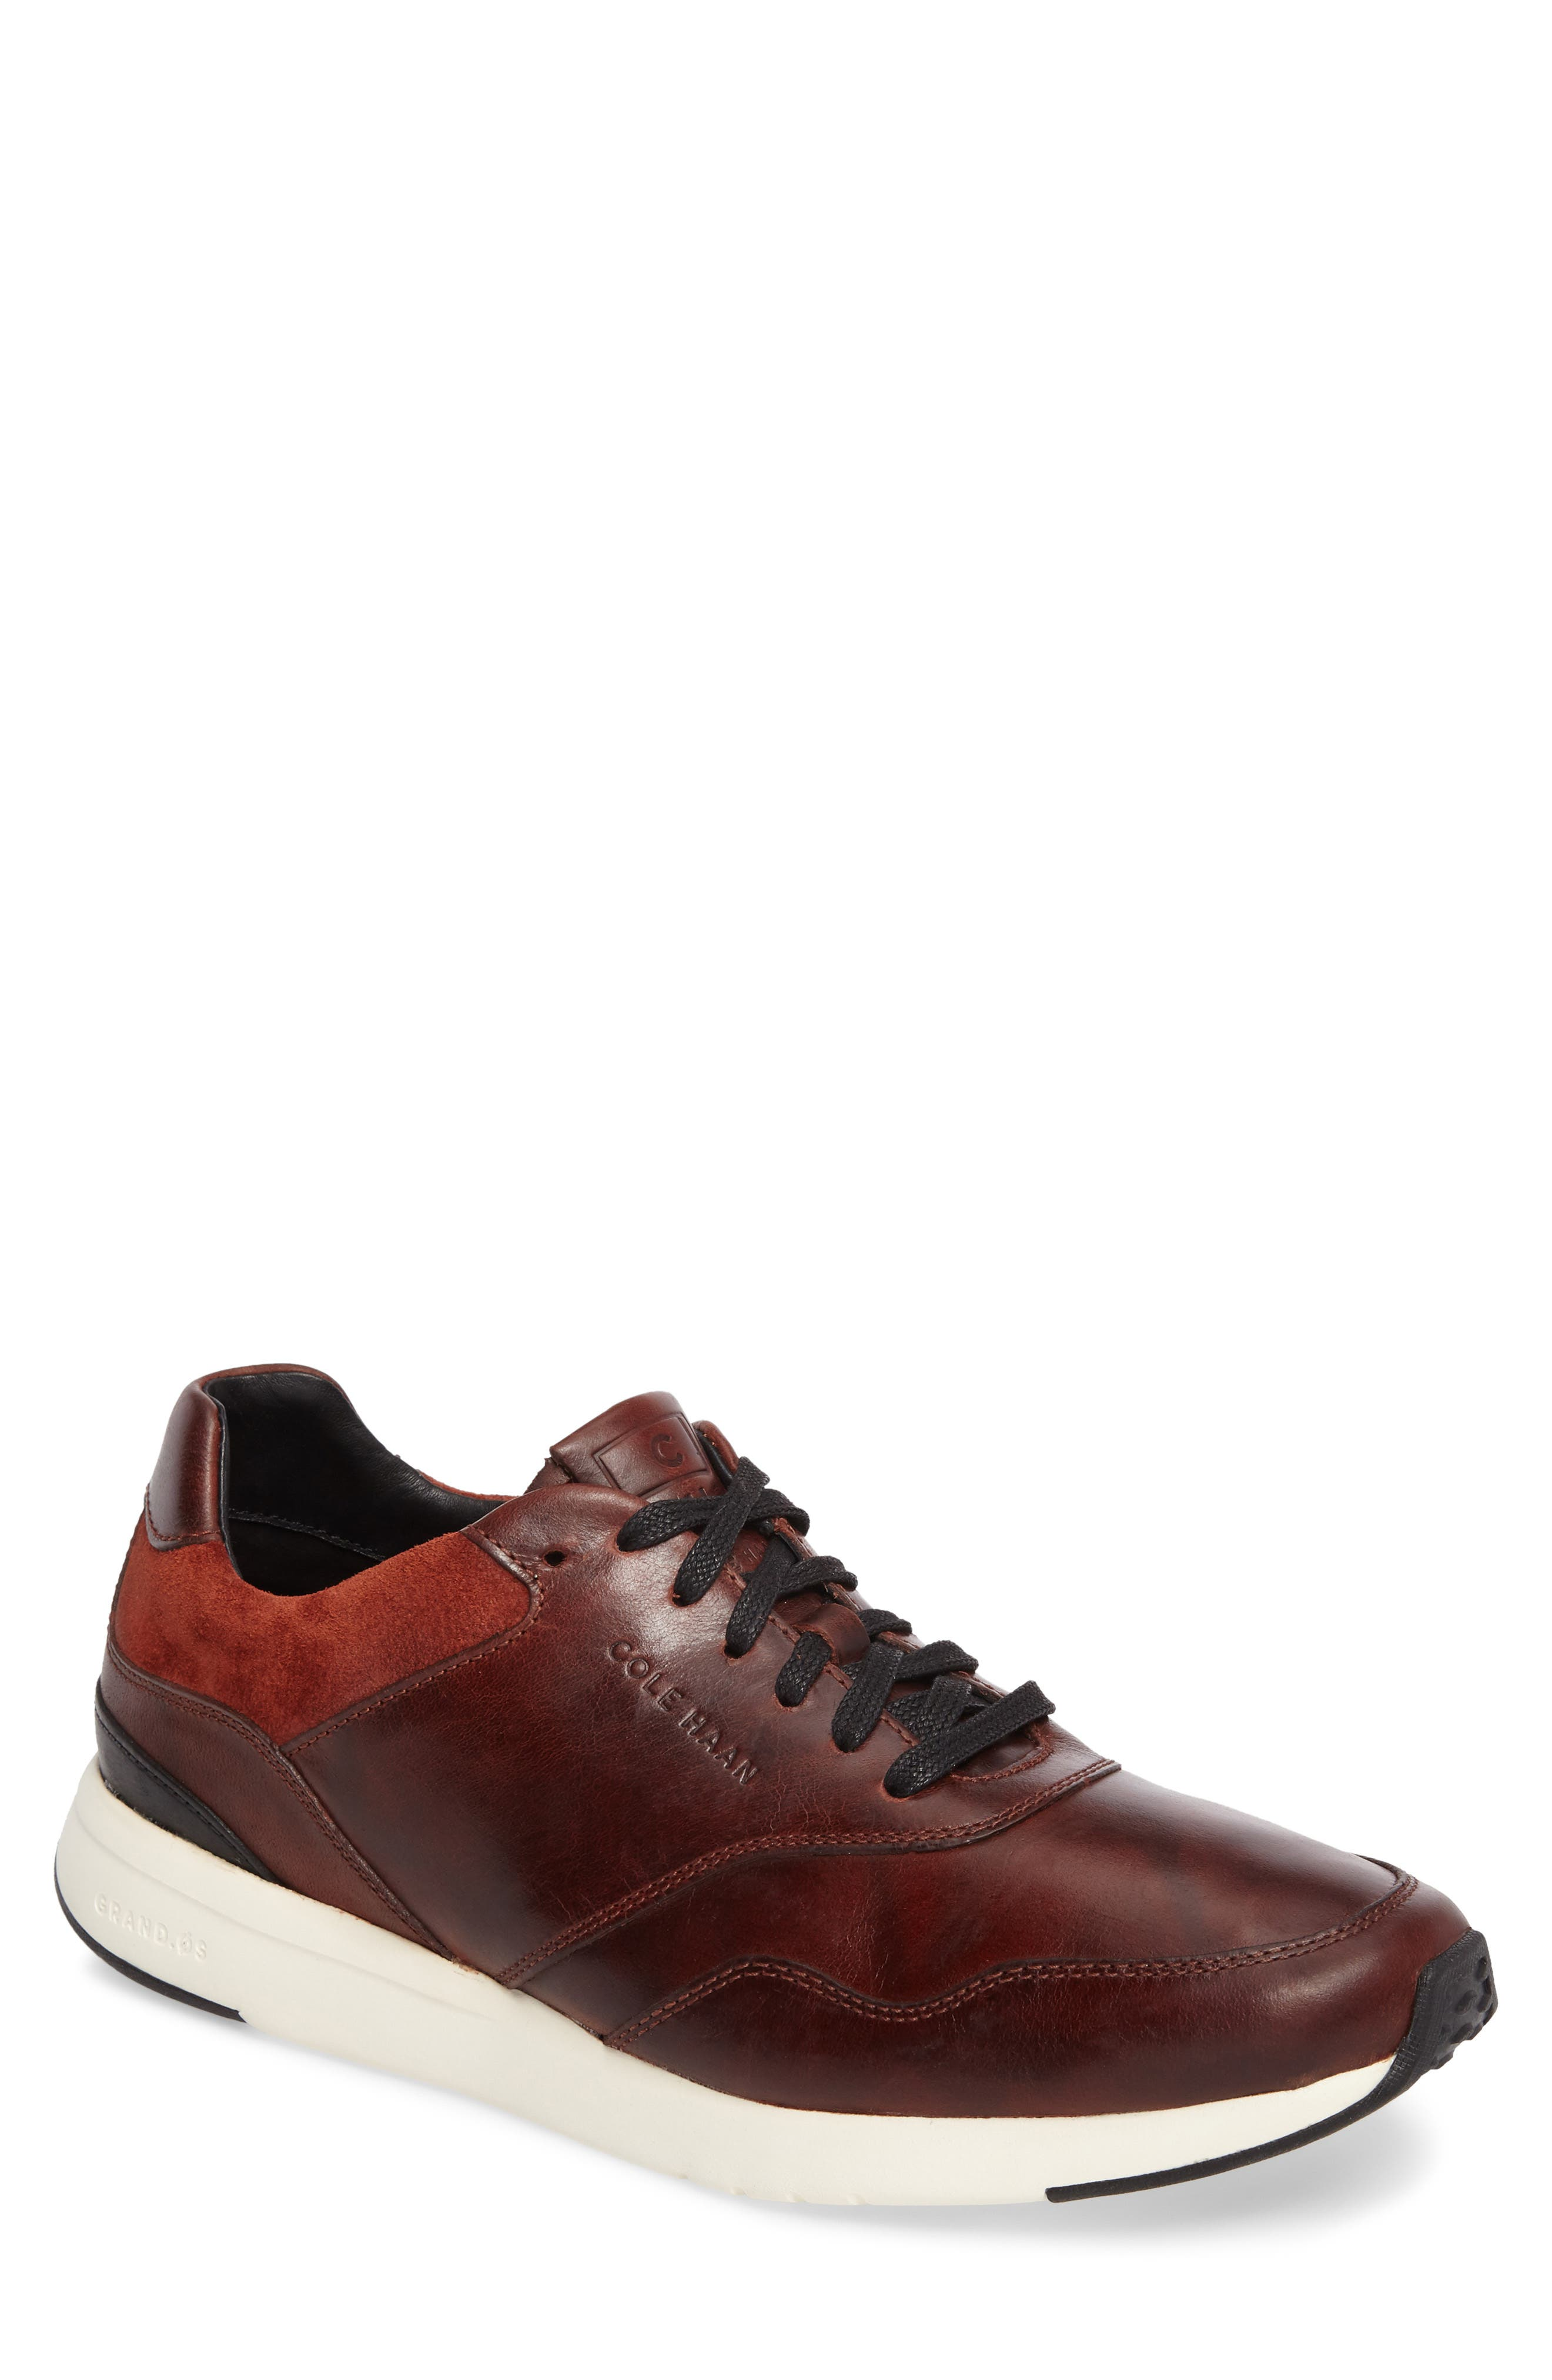 GrandPro Runner Sneaker,                         Main,                         color, Brandy Pull Up Leather